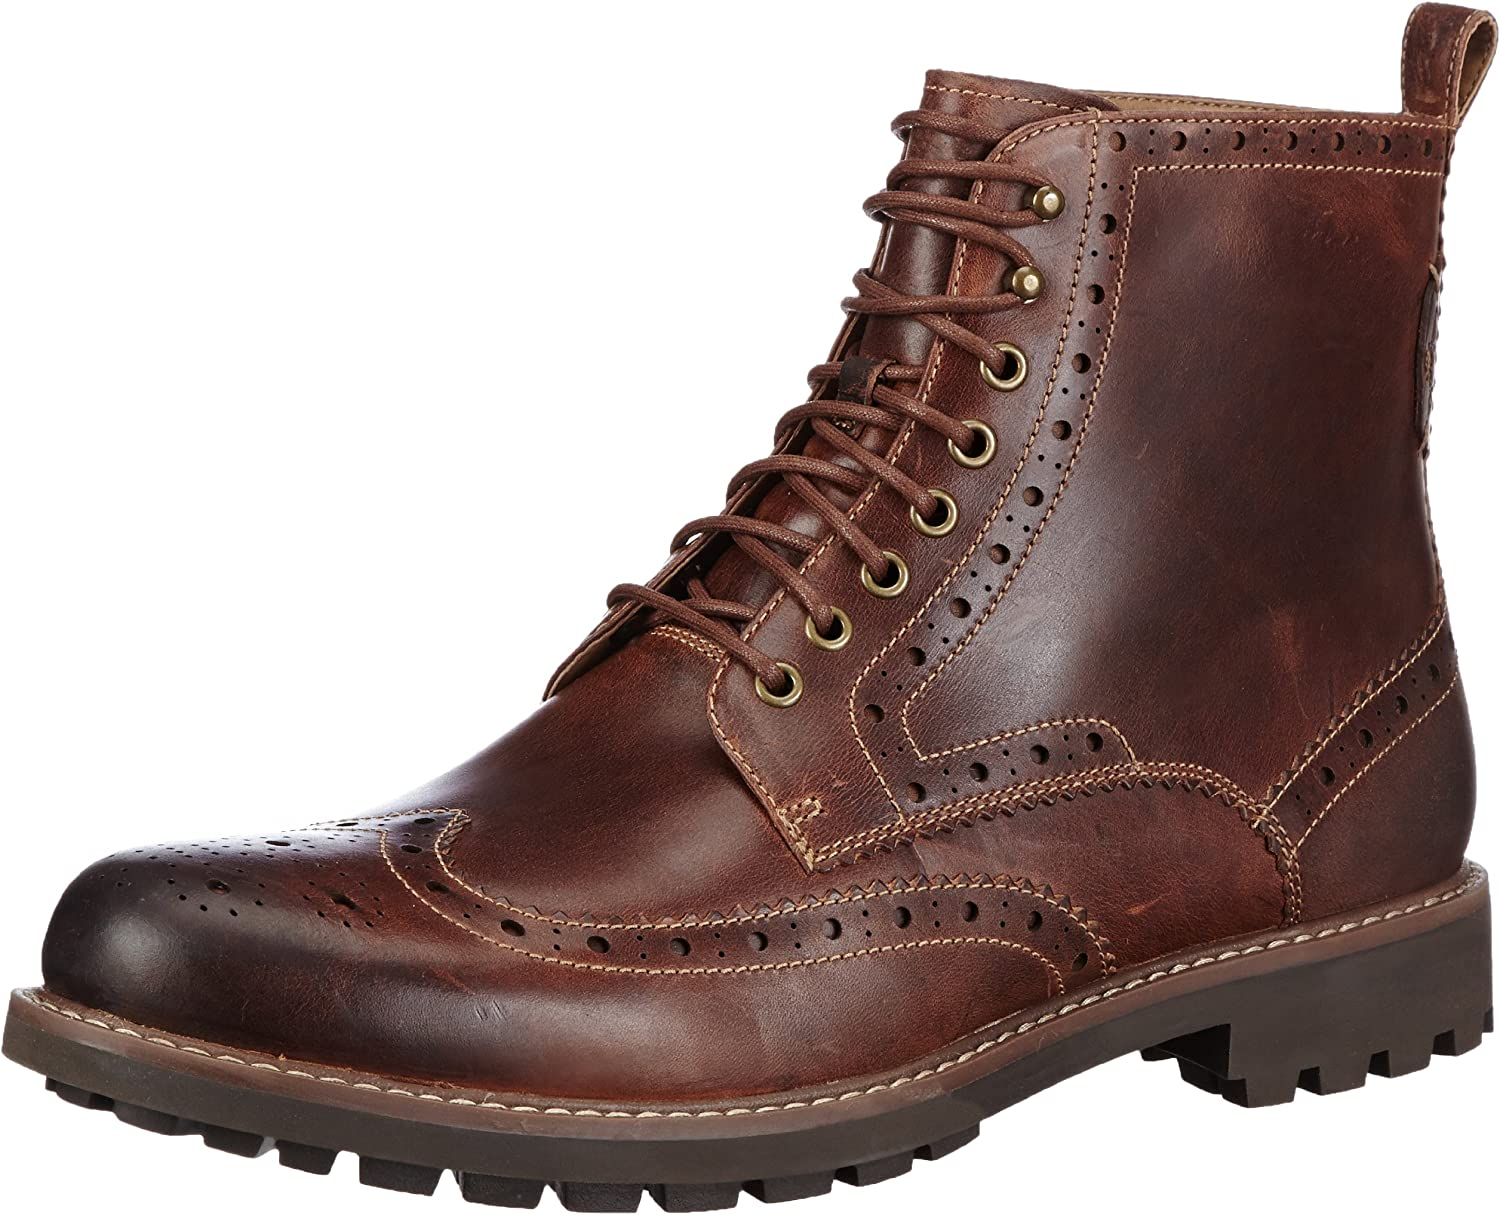 All stores are sold Clarks Men's Montacute Ranking TOP9 Lord Boots Dark Tan Brown Lea